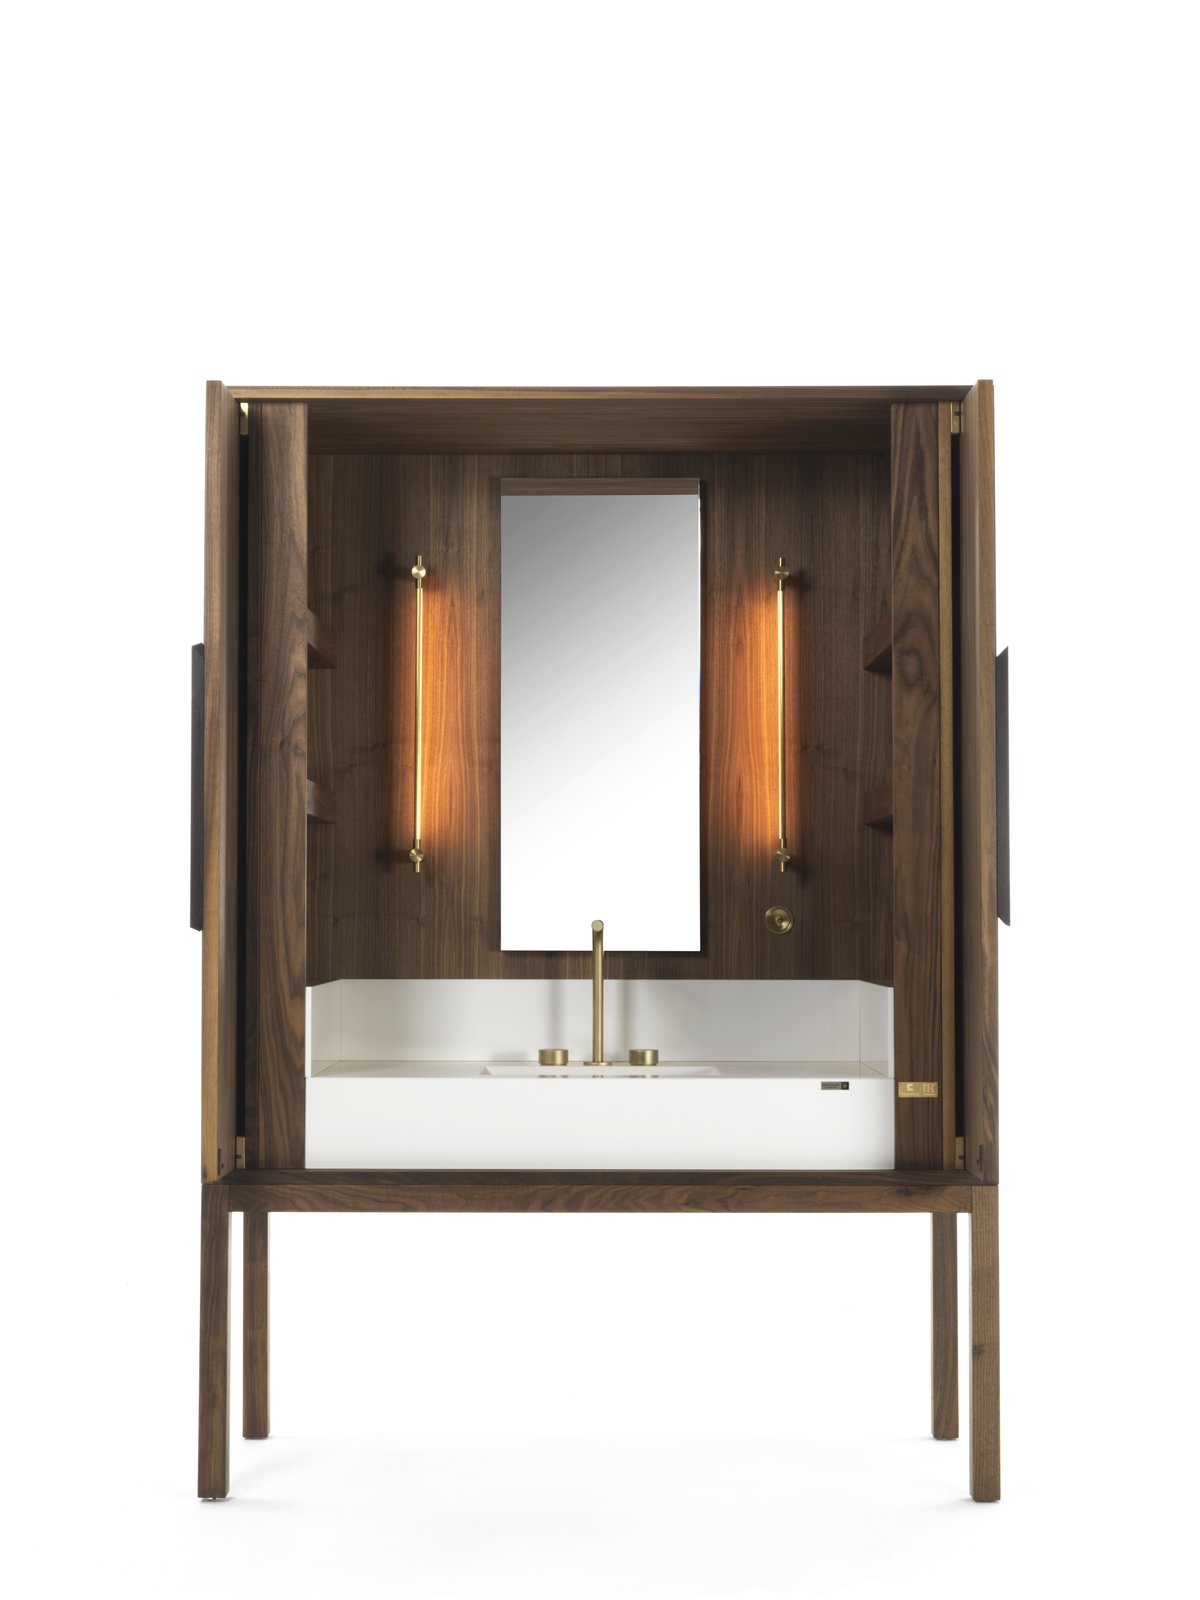 This Italian-style vanity credenza lets you bring the warmth of wood to your bathroom or bath space.